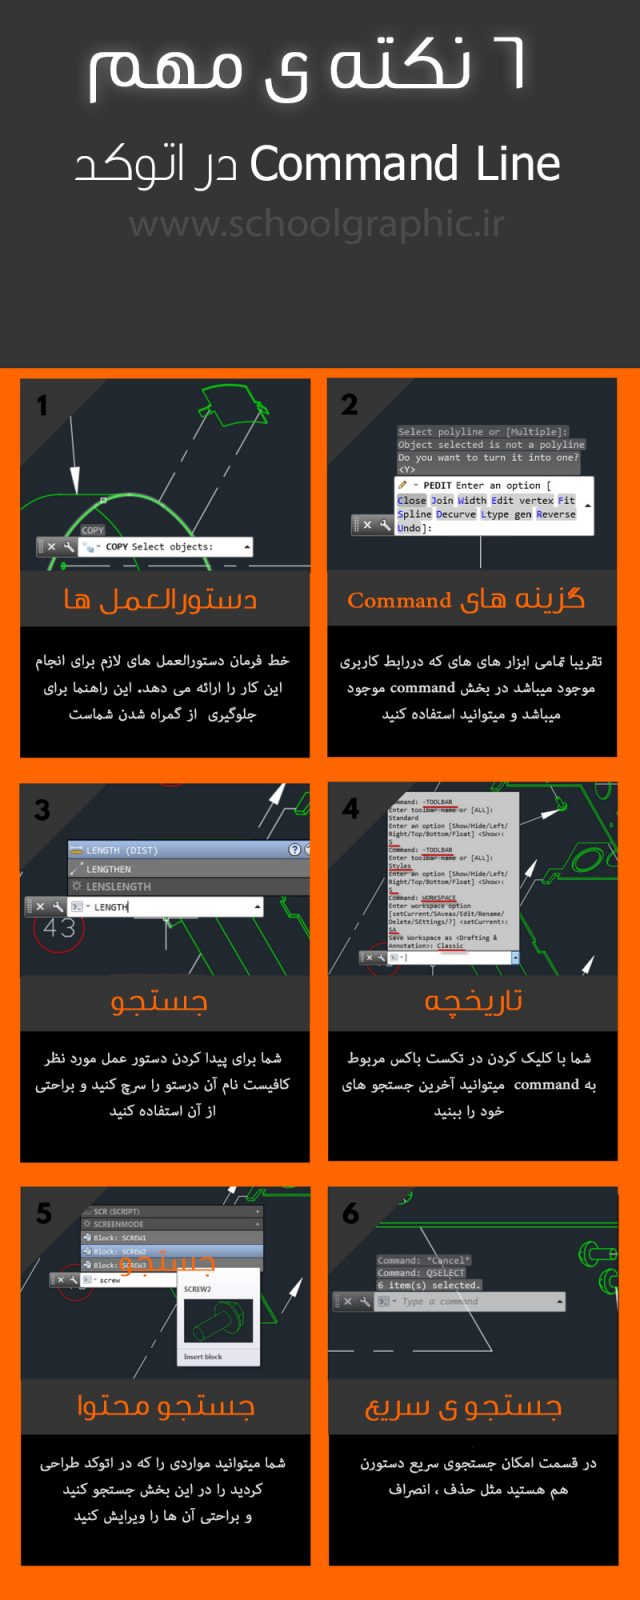 6 Things AutoCAD Command Line Can Do for You - ۶ کاربرد مهم Command Line در اتوکد (اینفوگرافیک)